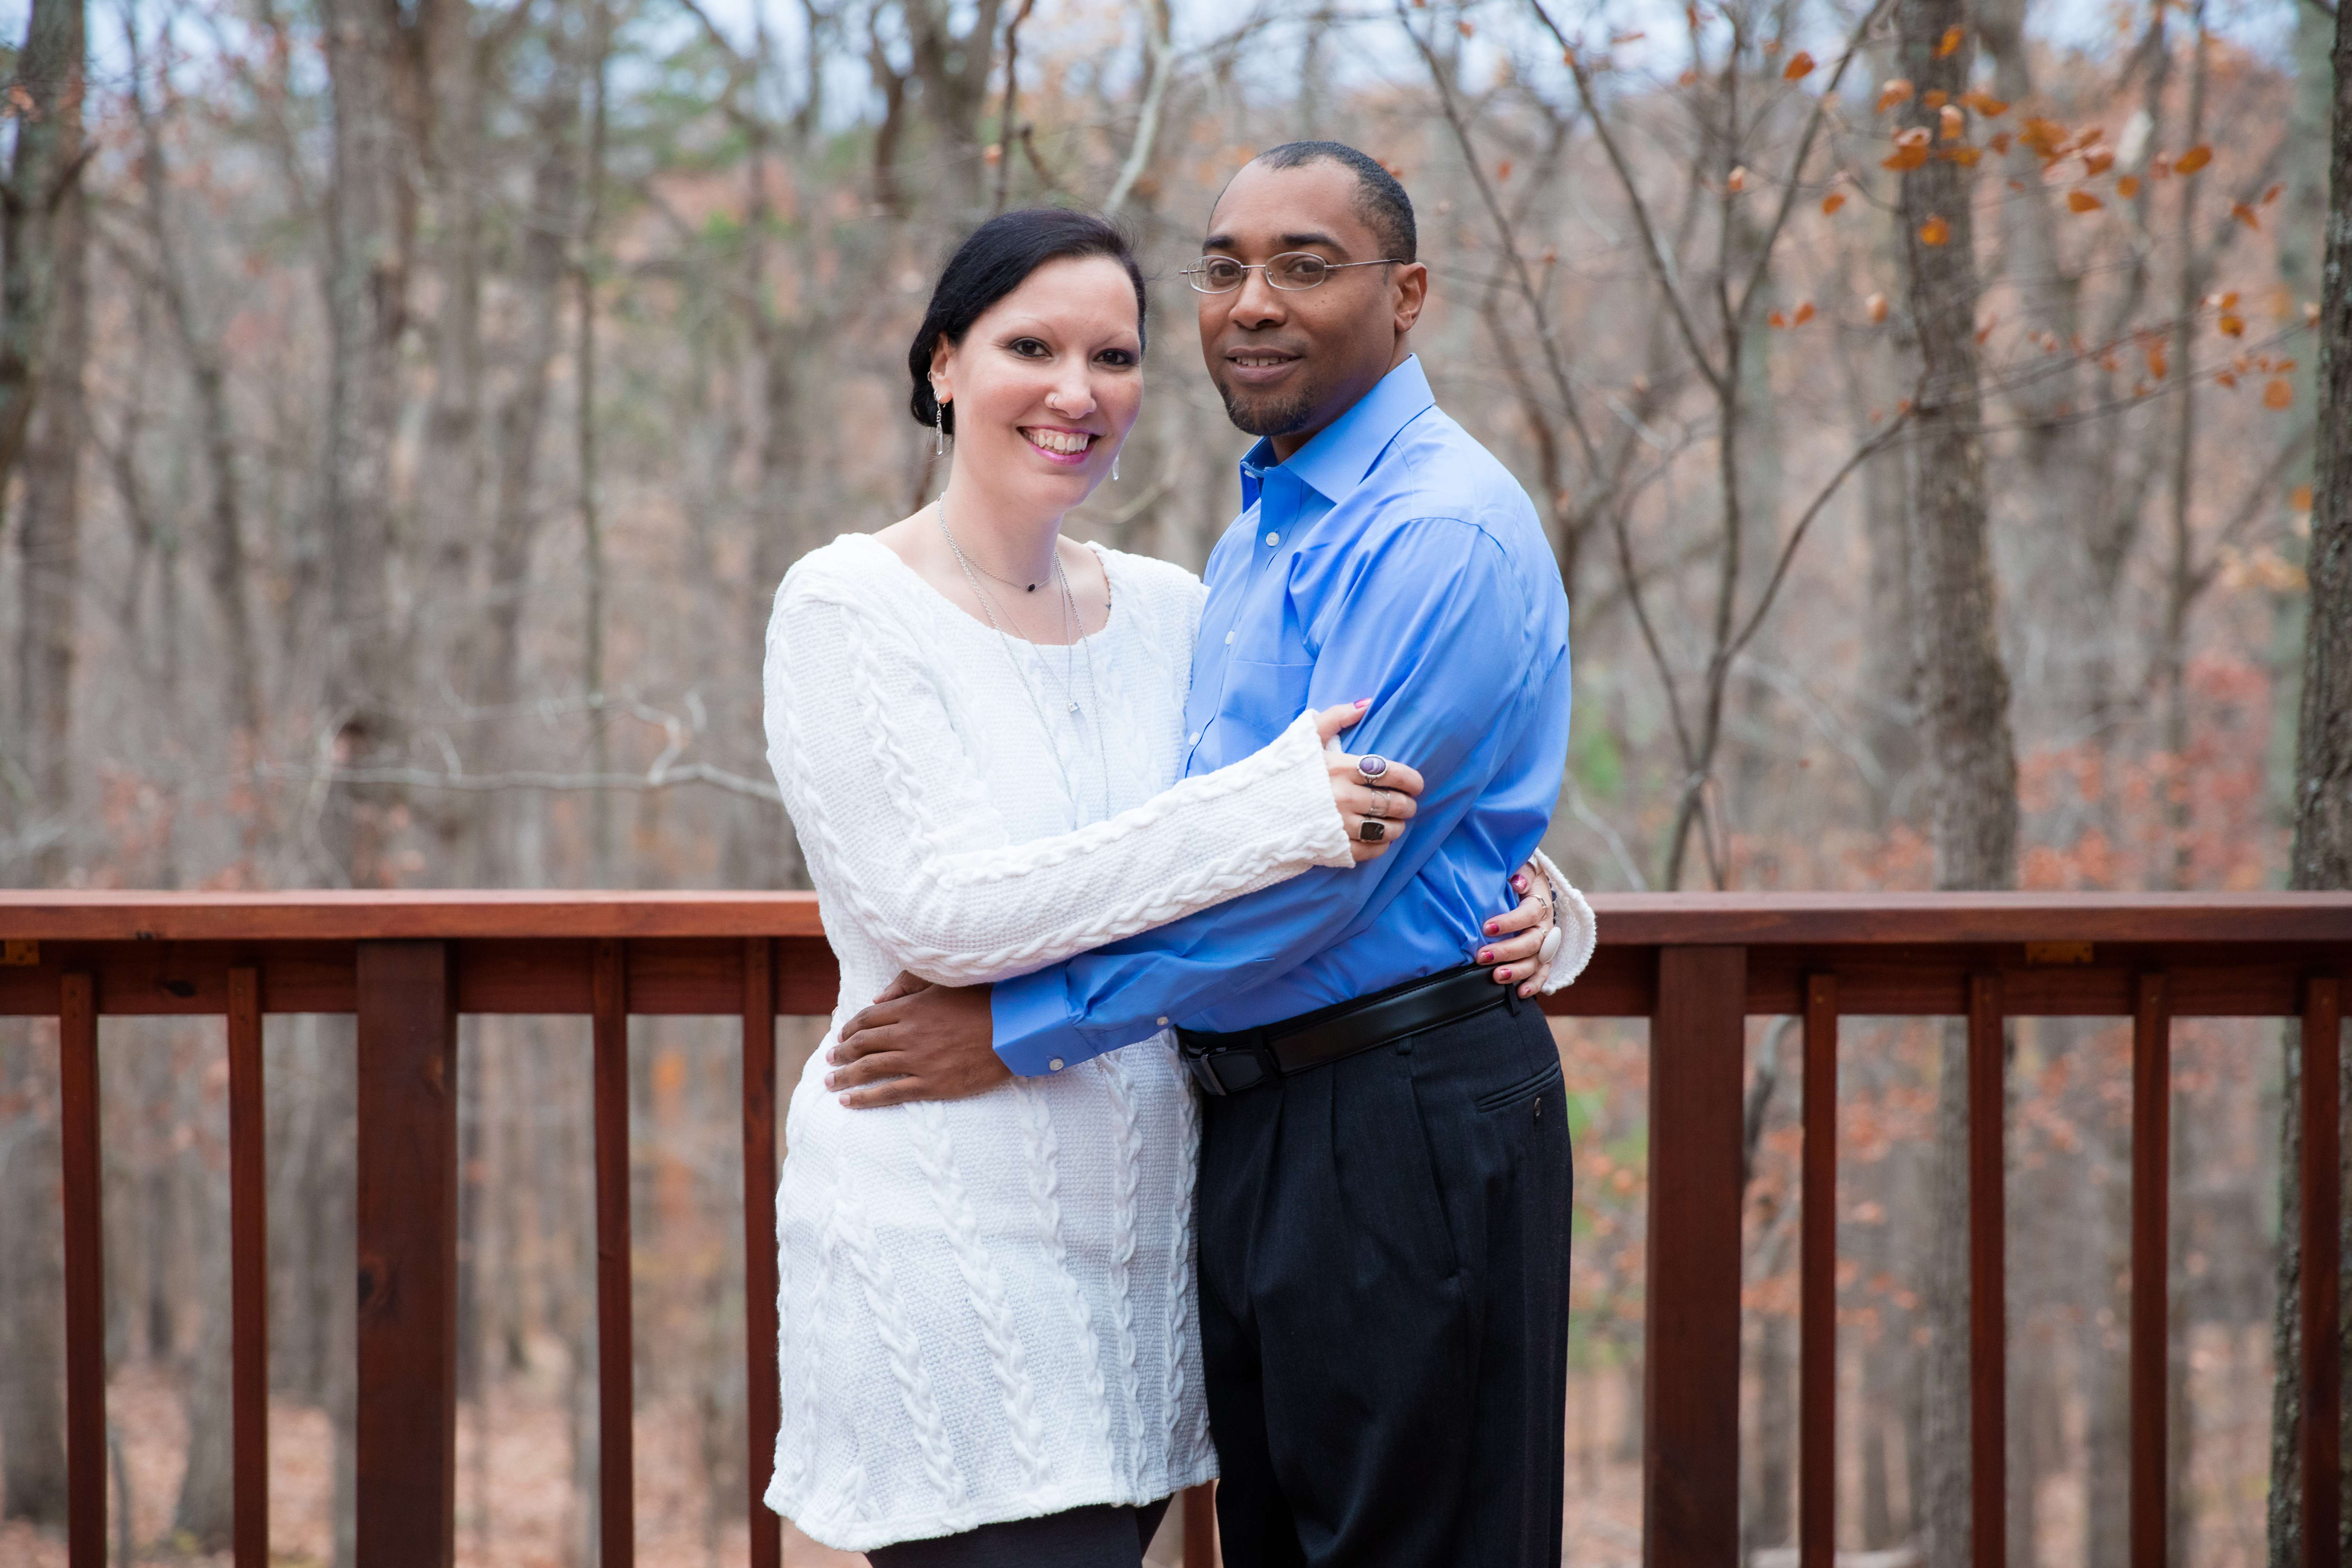 Nicci & Tev's Wish To Make A Difference